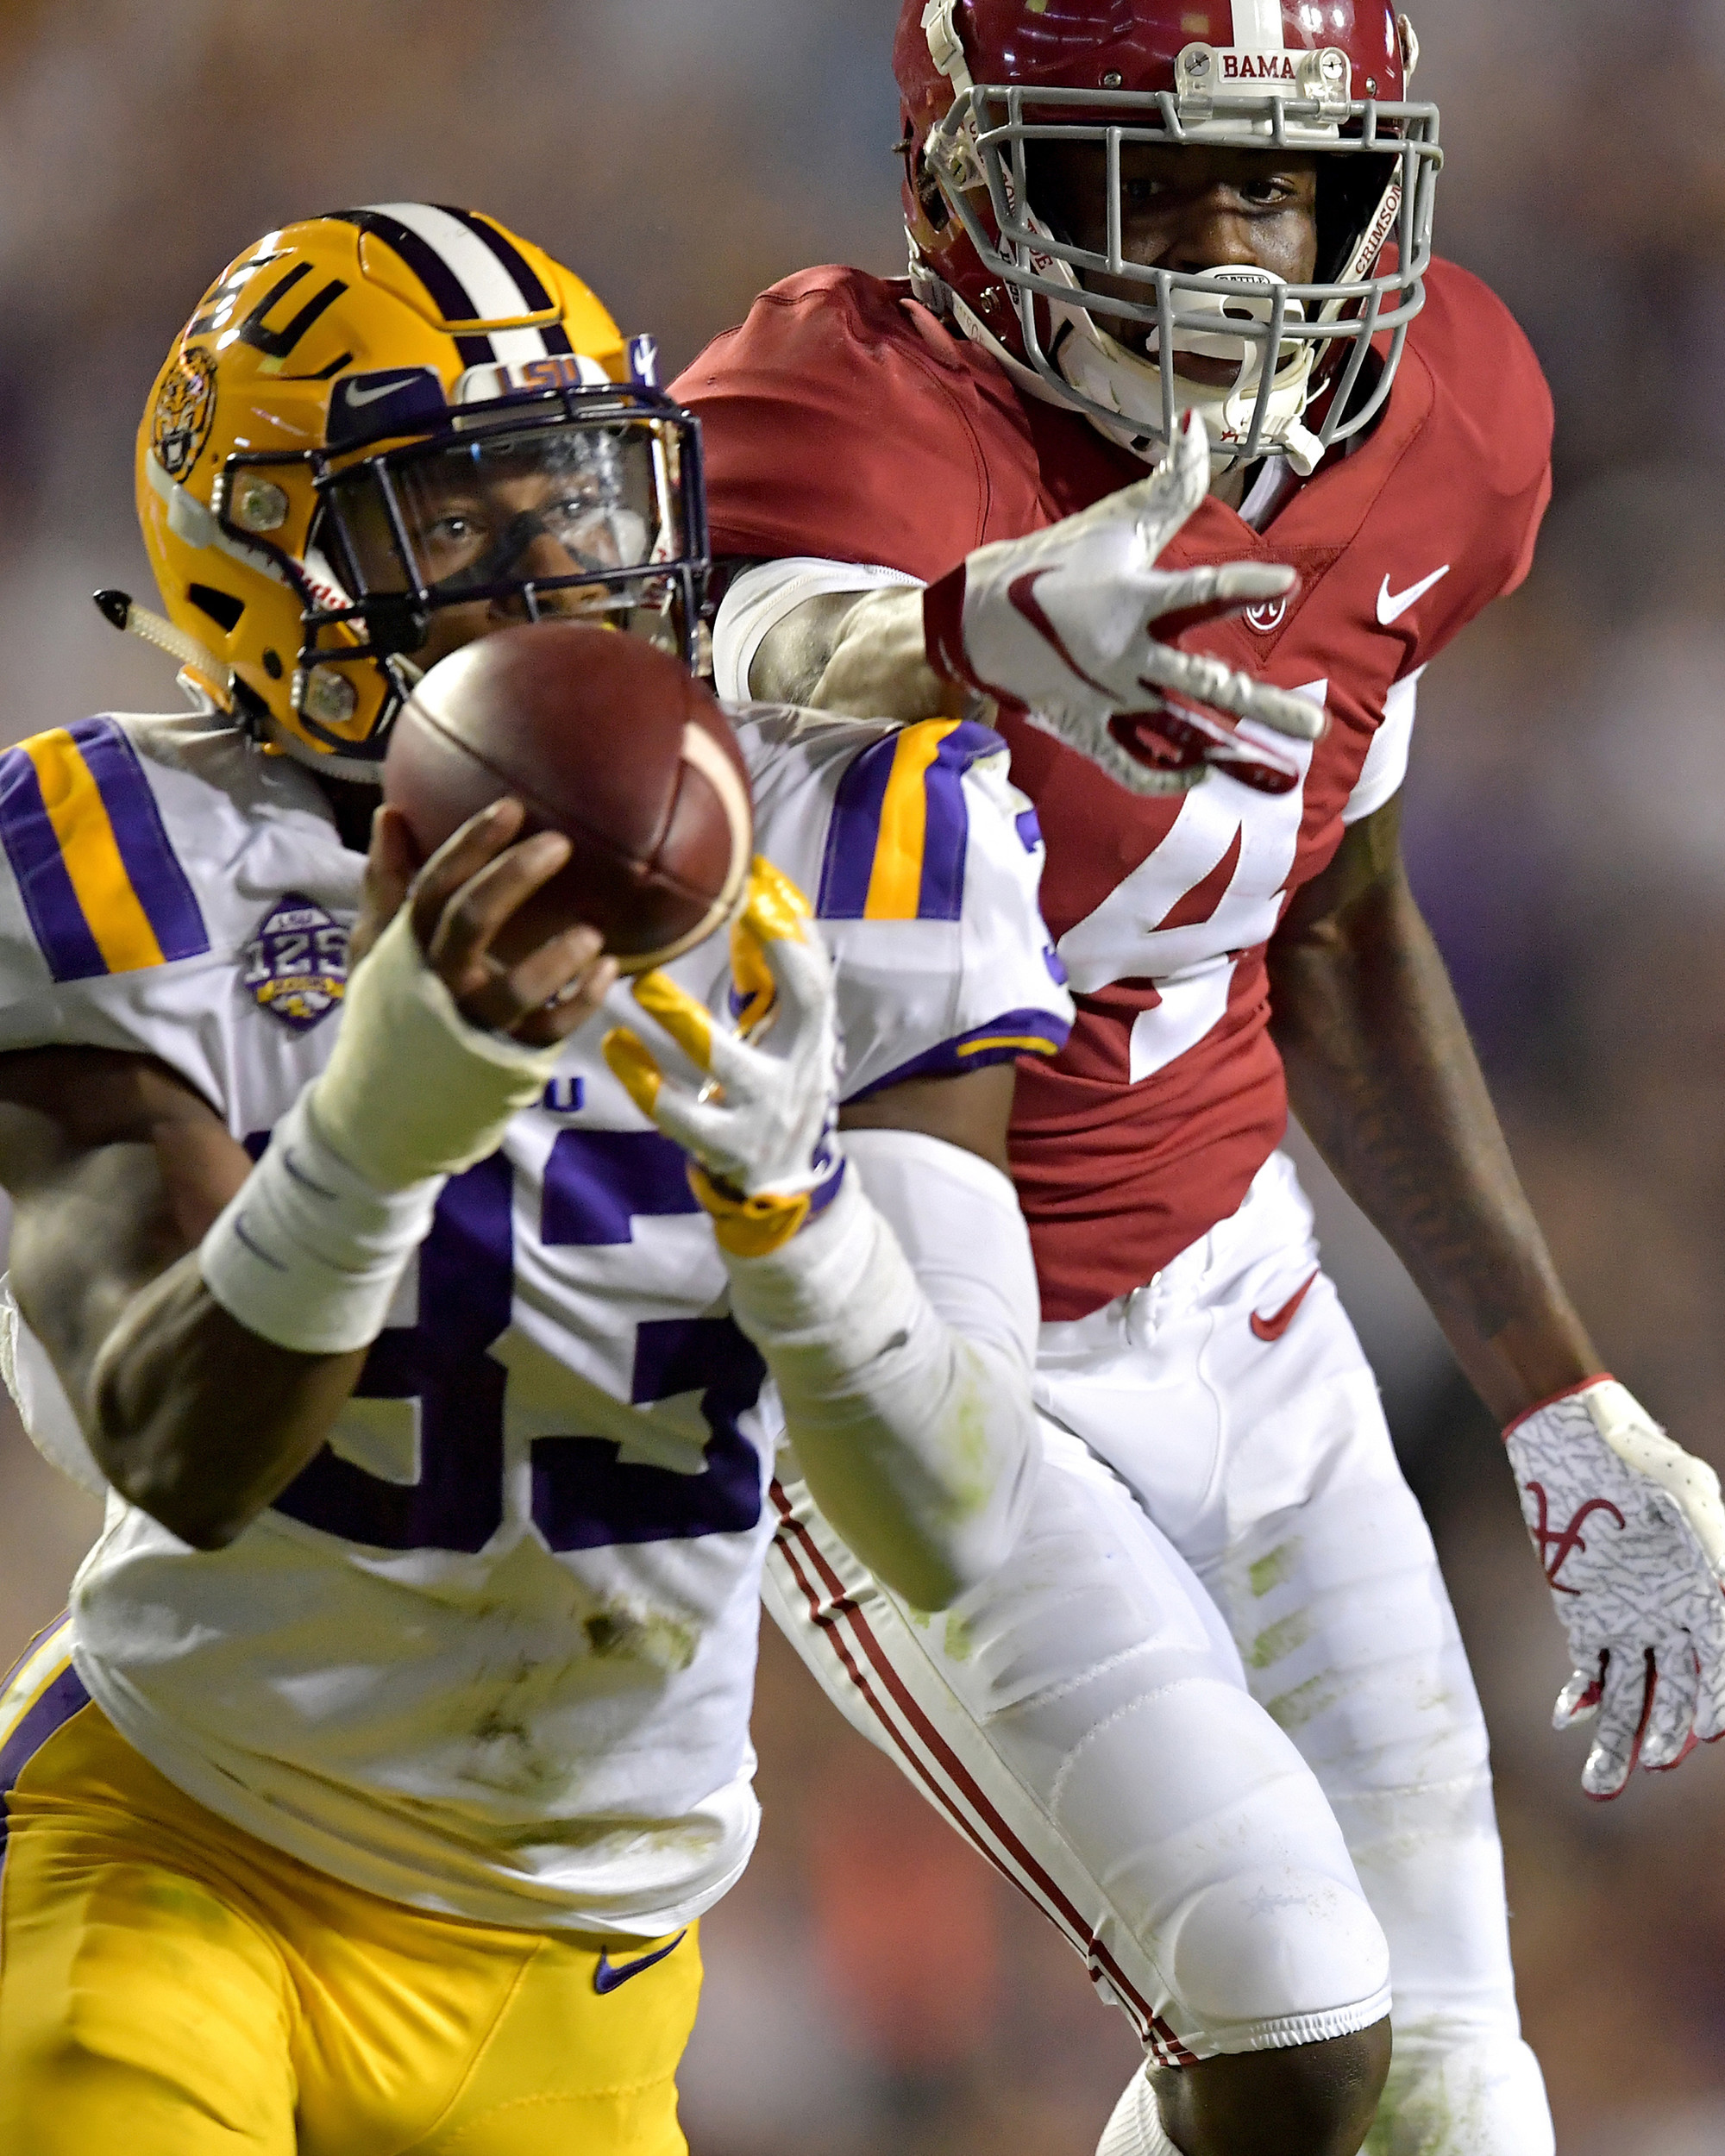 From the first half of an NCAA football game between the Alabama Crimson Tide and the LSU Tigers Saturday, November 3, 2018, at Tiger Stadium in Baton Rouge, La. Alabama wins 29-0. (Photo by Lee Walls)